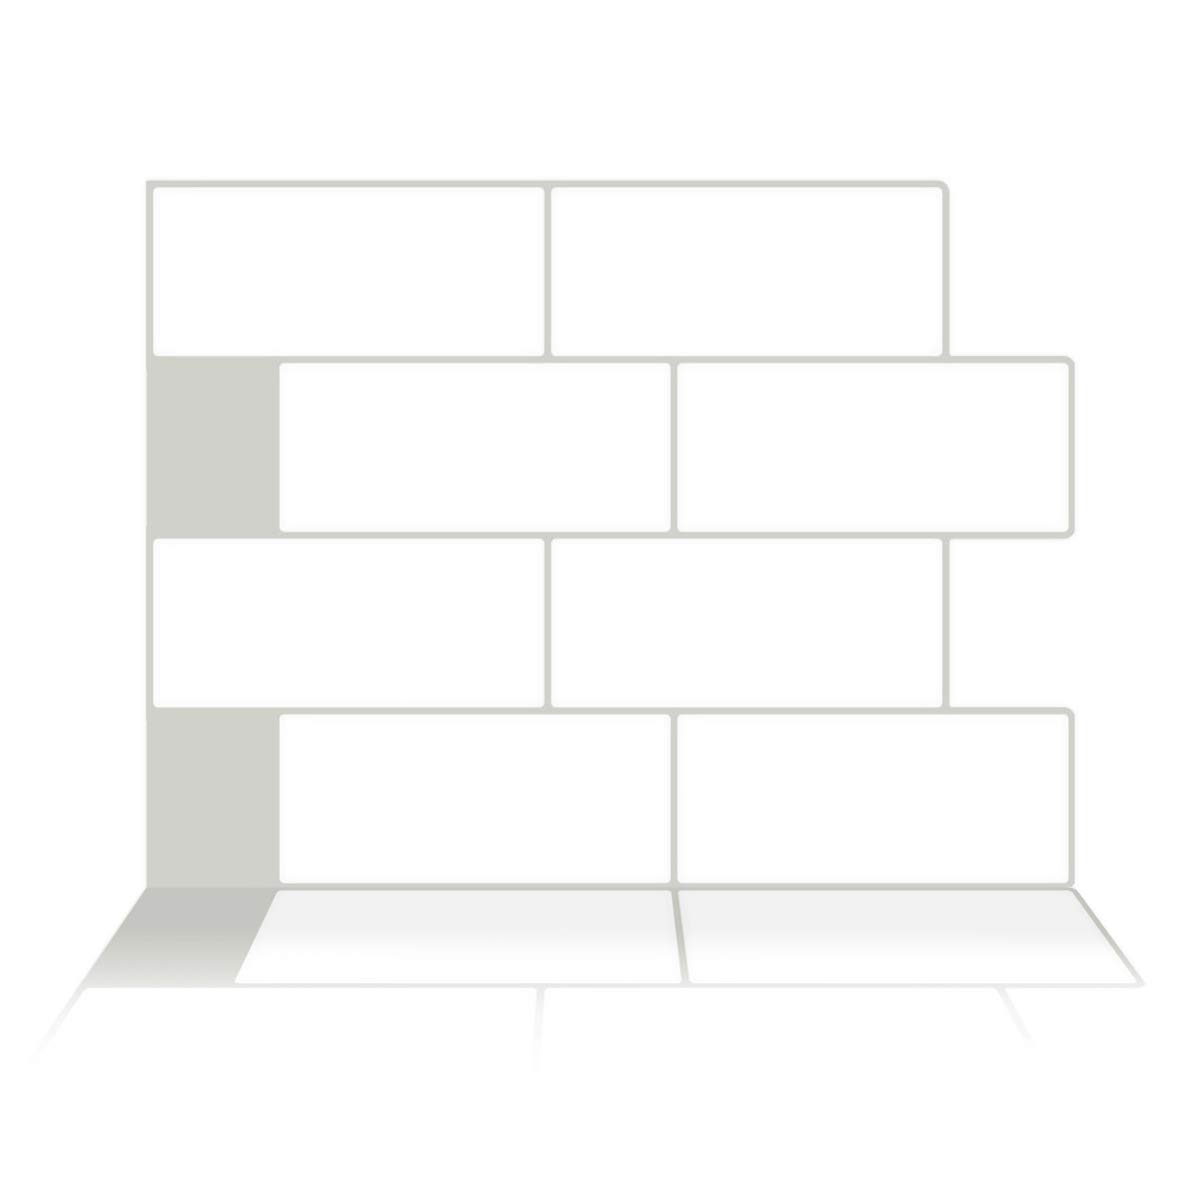 Tic Tac Tiles - Premium Anti Mold Peel and Stick Wall Tile Backsplash in Subway Matt Design (White, 6)